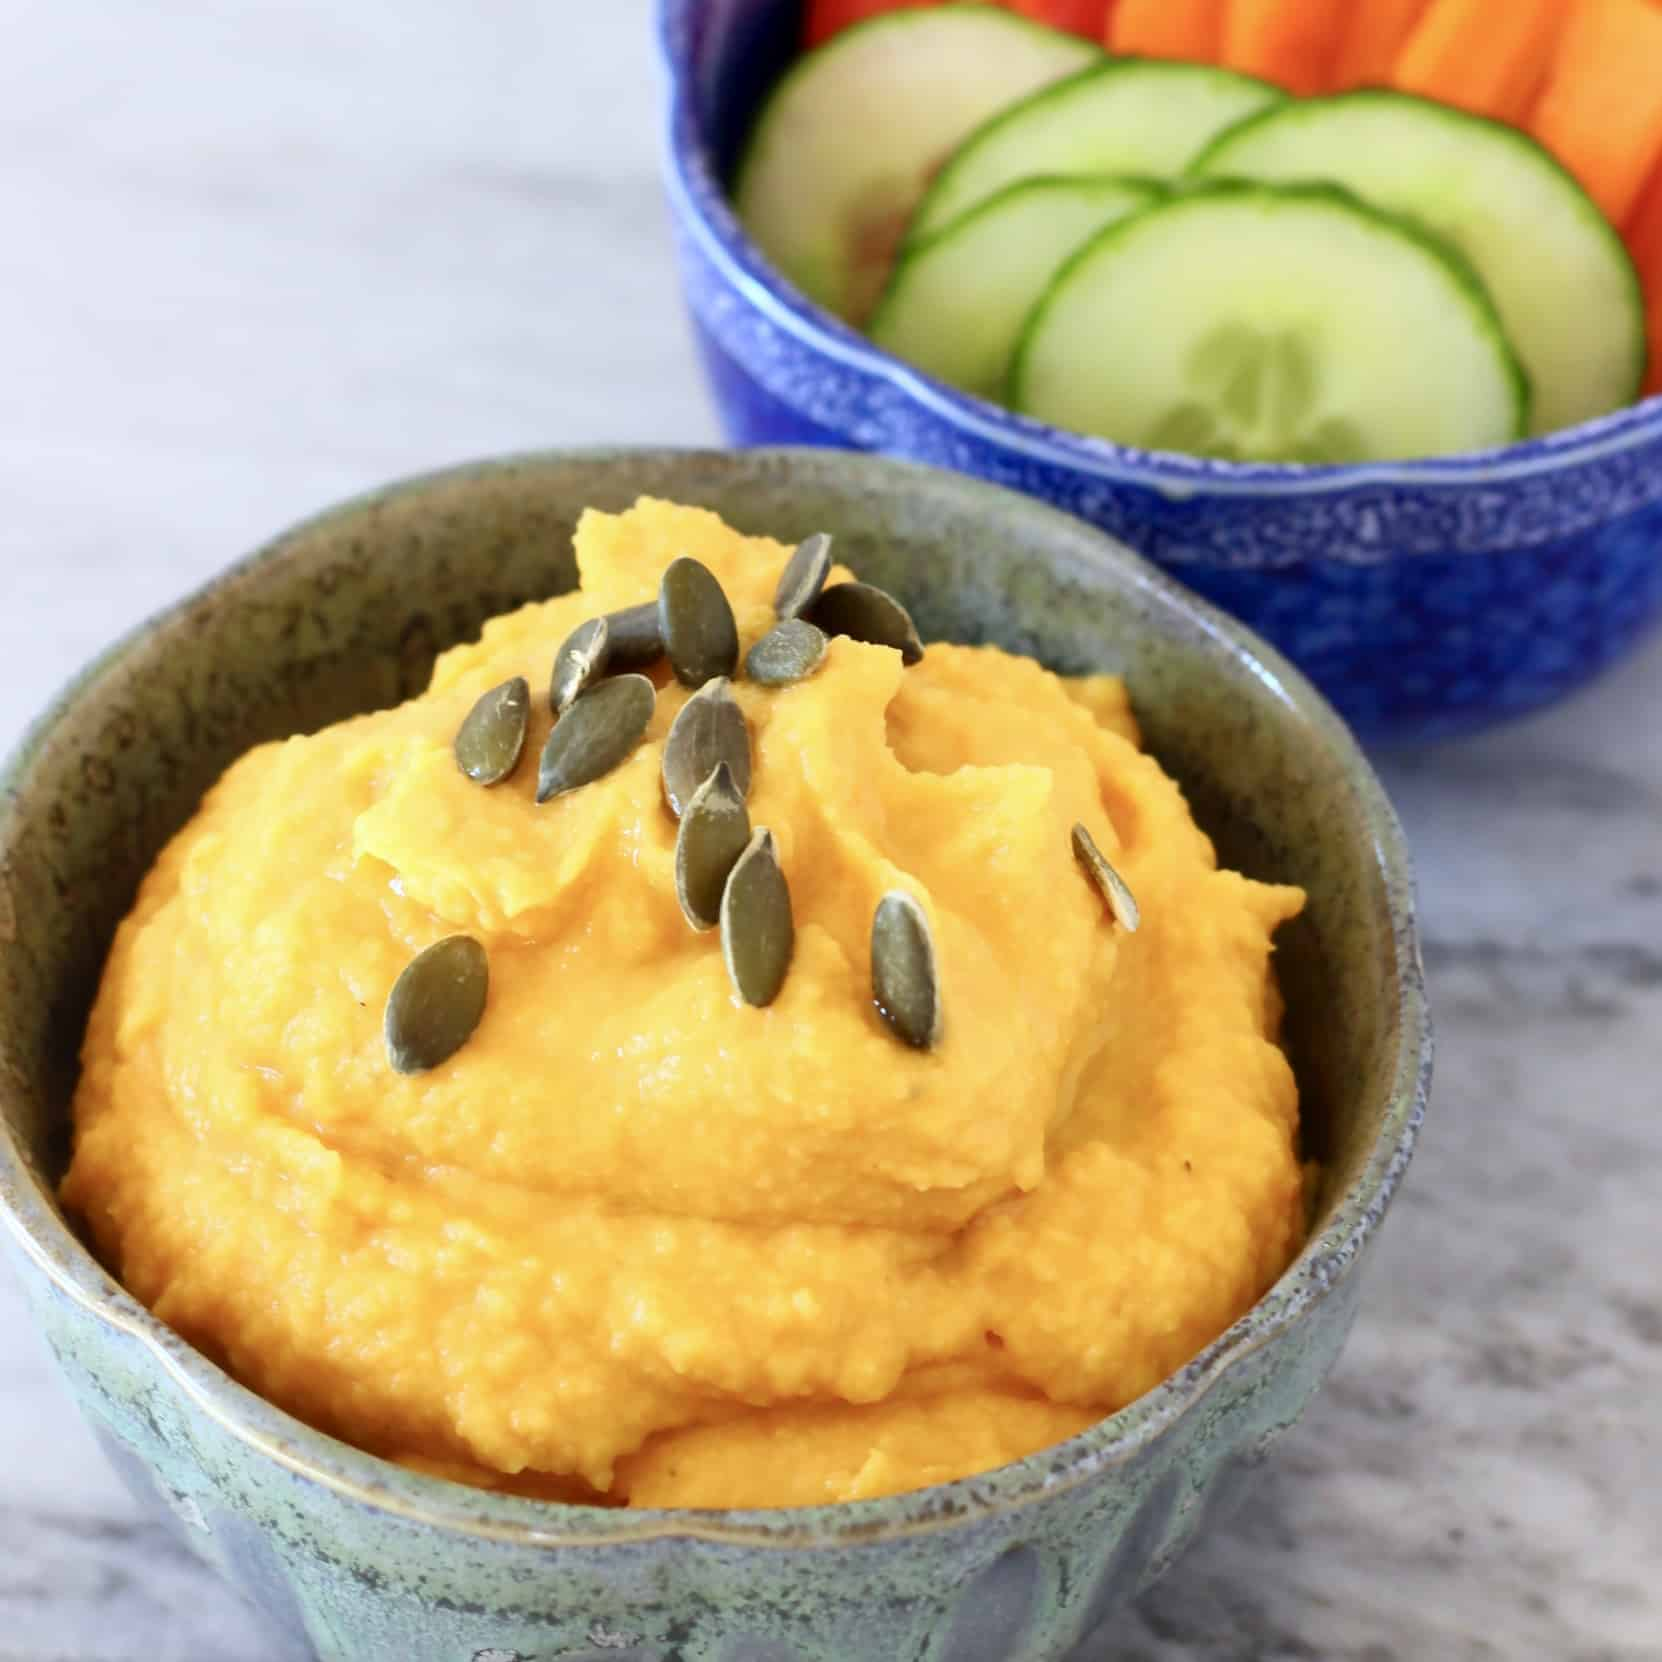 Photo of a grey bowl of orange pumpkin hummus topped with green pumpkin seeds and a blue bowl of chopped vegetables on a marble surface